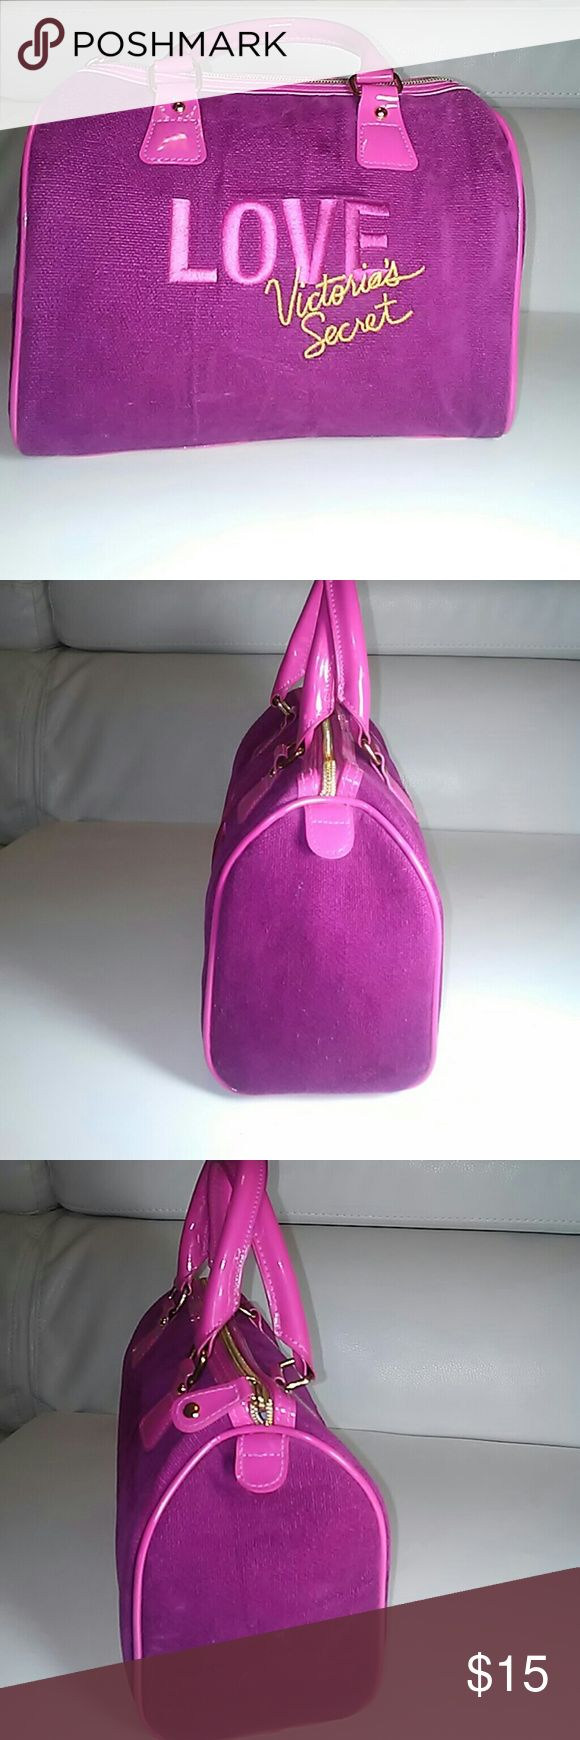 New no tags Victoria Secret velvet bag Pink on the bottom wine color material like velcet  Inside looks pink super clean no odors tears no damage bag was in plastic vacum bag in dry place . The size is 8 inches long 9 inches wide 4 inches deep  See pics or ask any questions Victoria Secret Bags Mini Bags